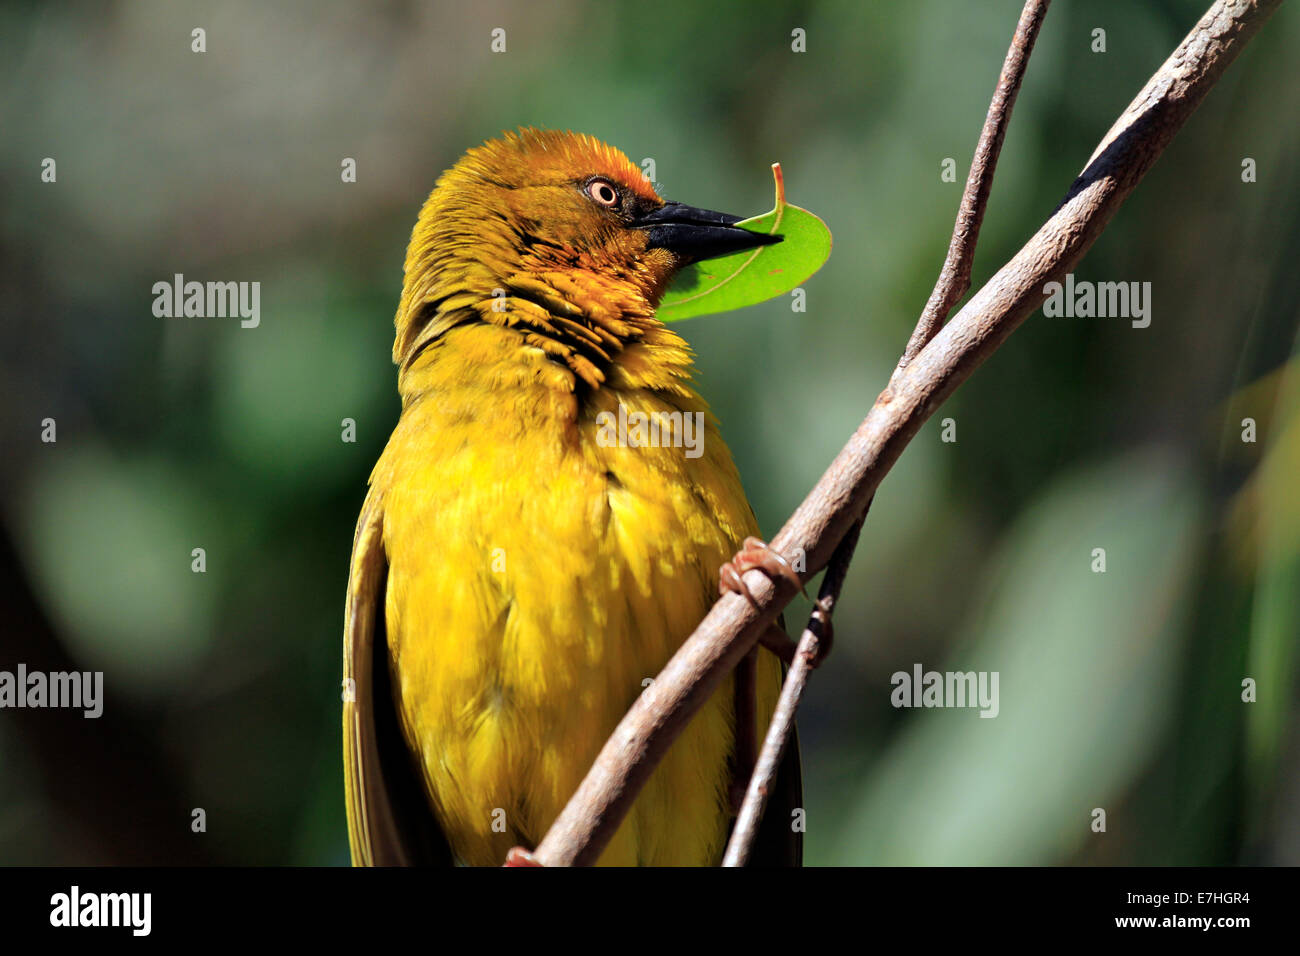 A male Cape Weaver (Ploceus capensis)  in the West Coast National Park in Langebaan, Western province, South Africa. - Stock Image